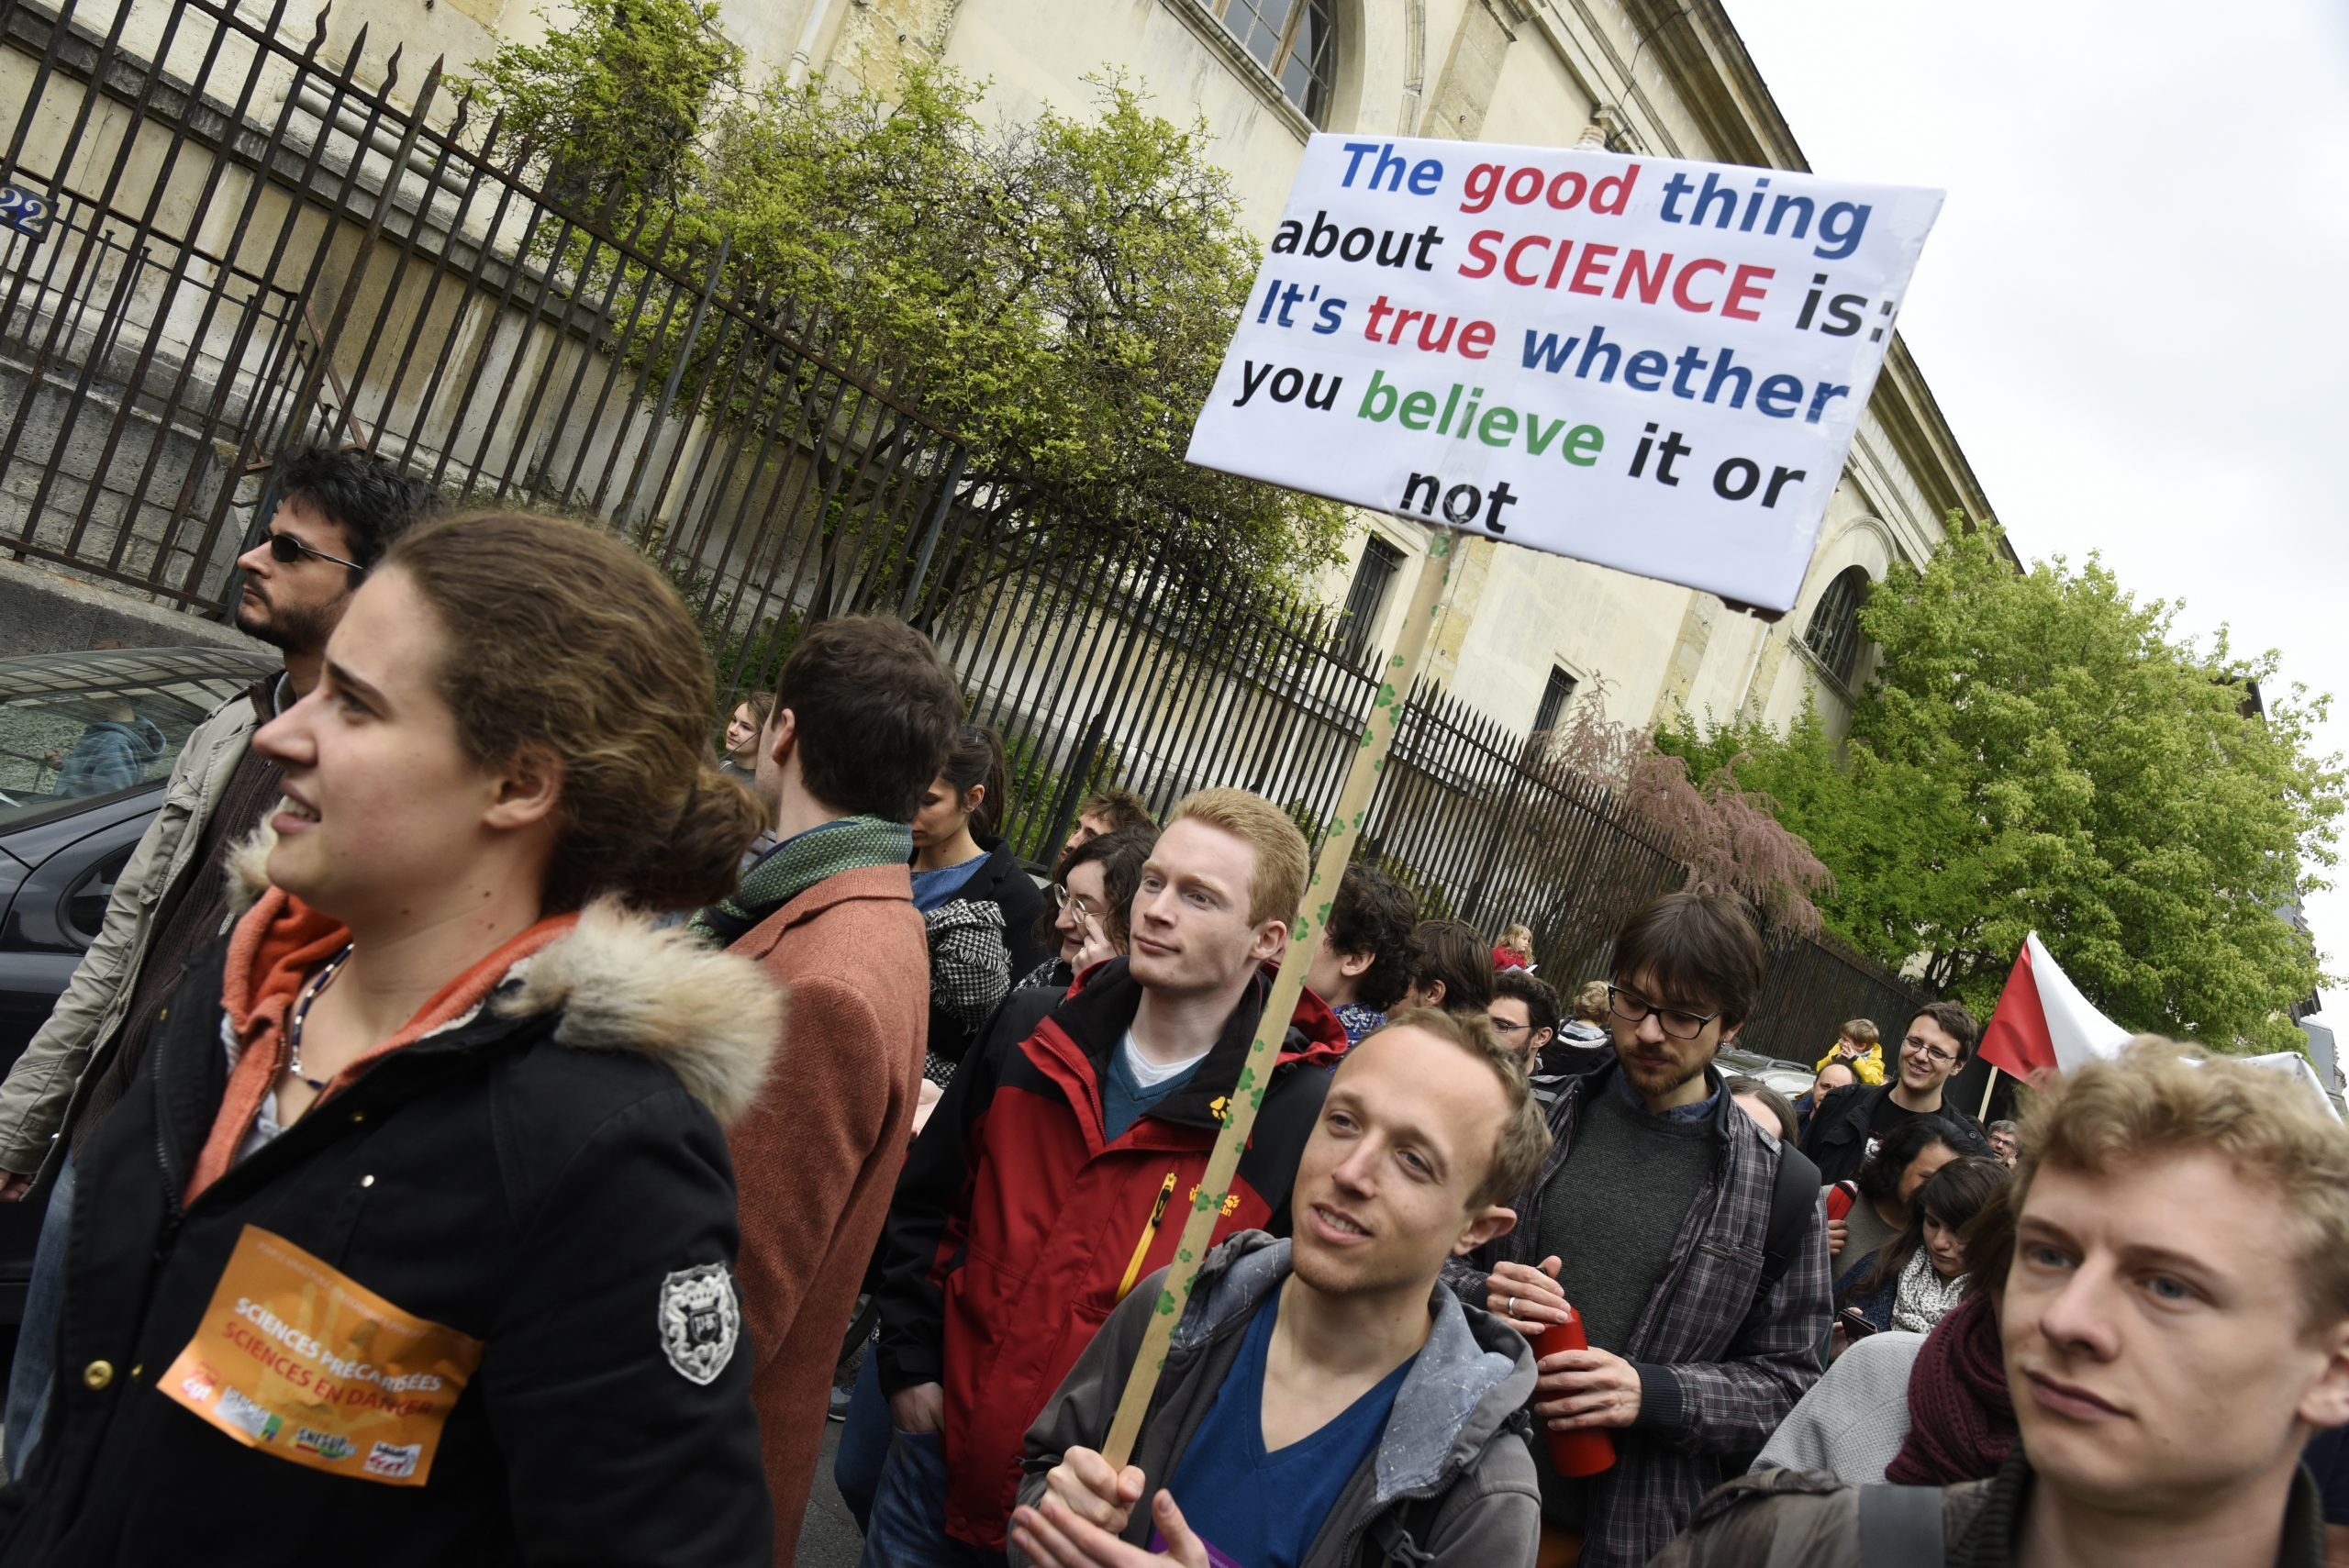 March for Science protesters march to demonstrate on April 22, 2017 in Paris.  (Photo by John van Hasselt/Corbis via Getty Images)